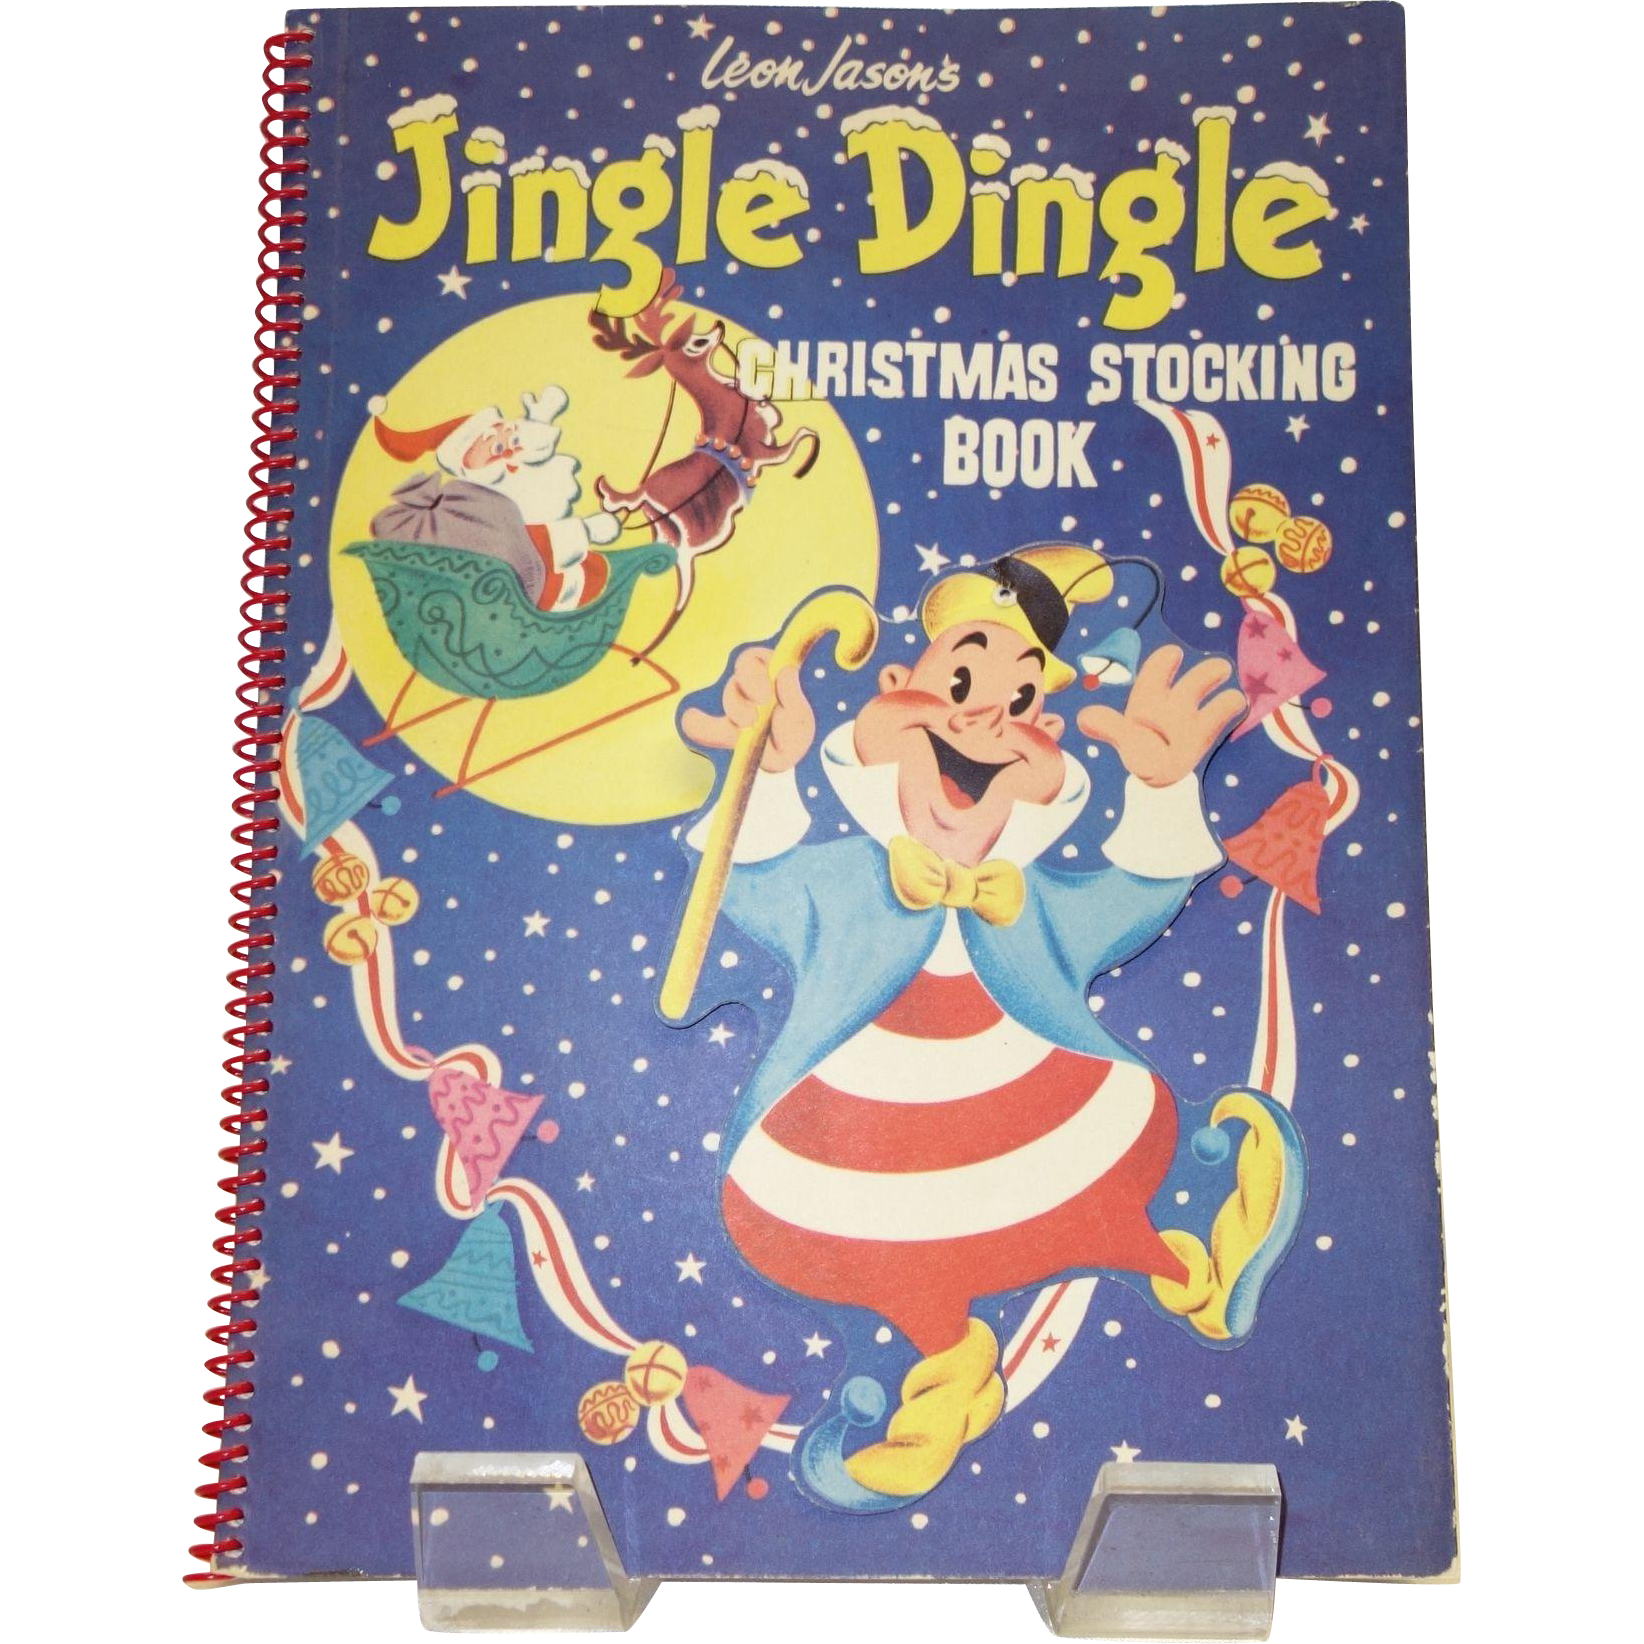 Vintage Jingle Dingle Christmas Stocking Pop-Up Book by Leon Jason c. 1953